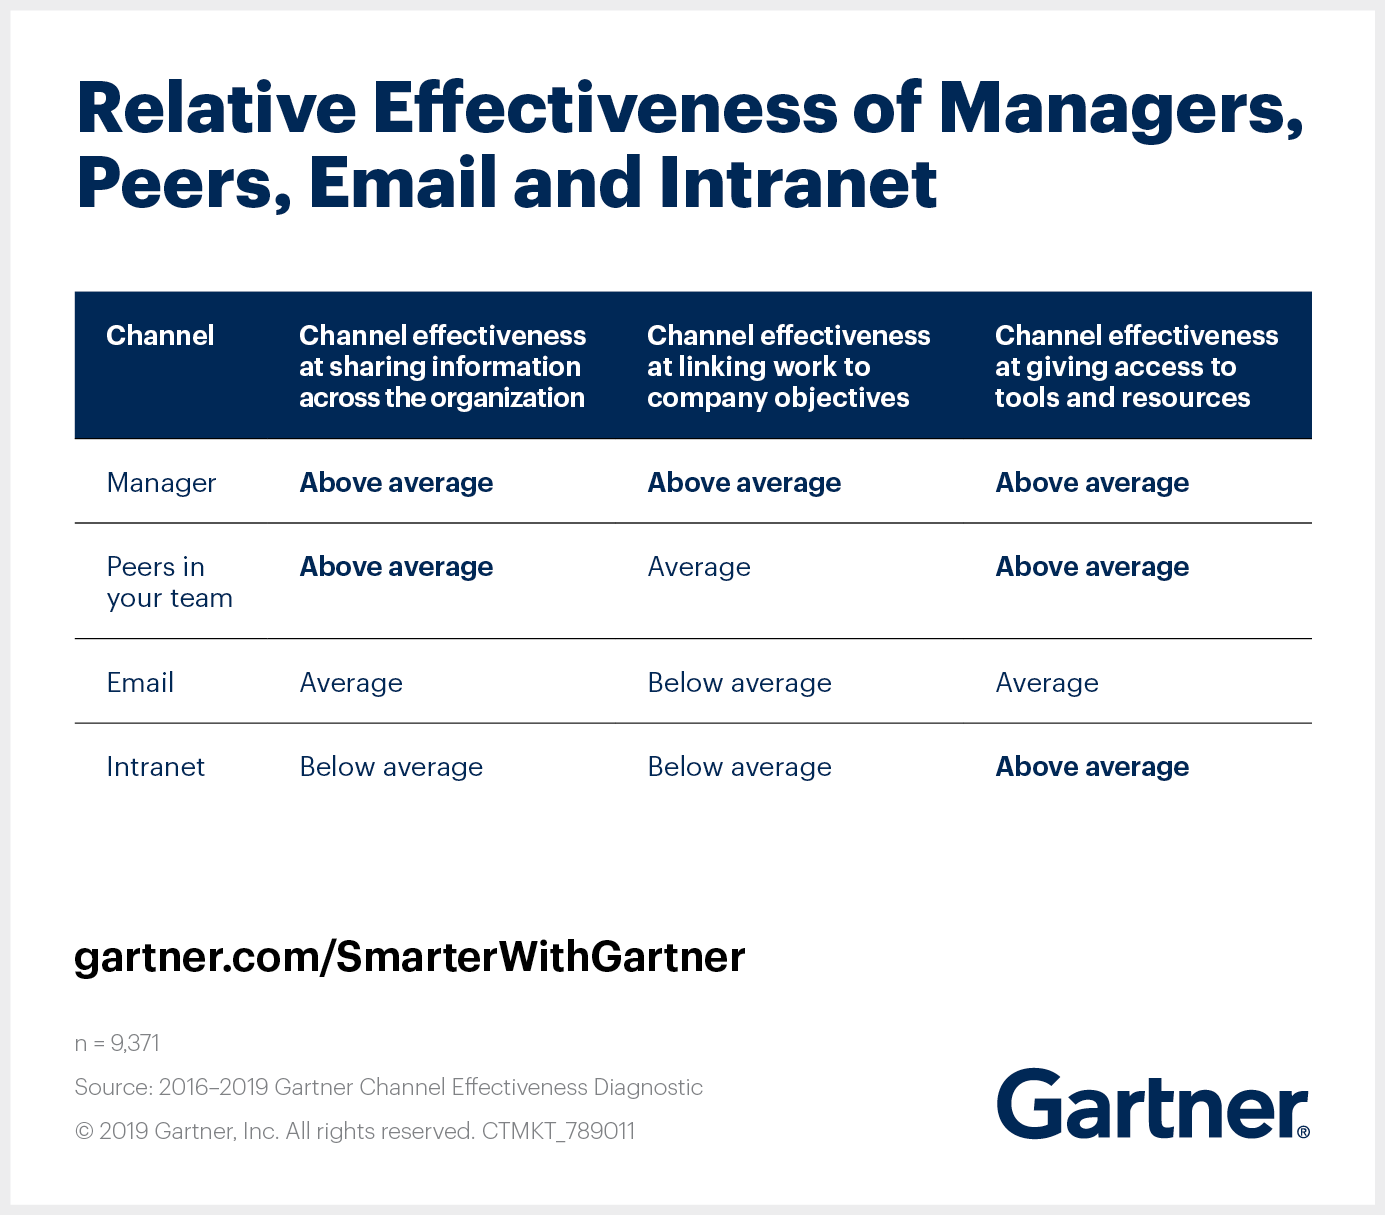 Relative effectiveness of managers, peers, email and intranet on achieving communication goals